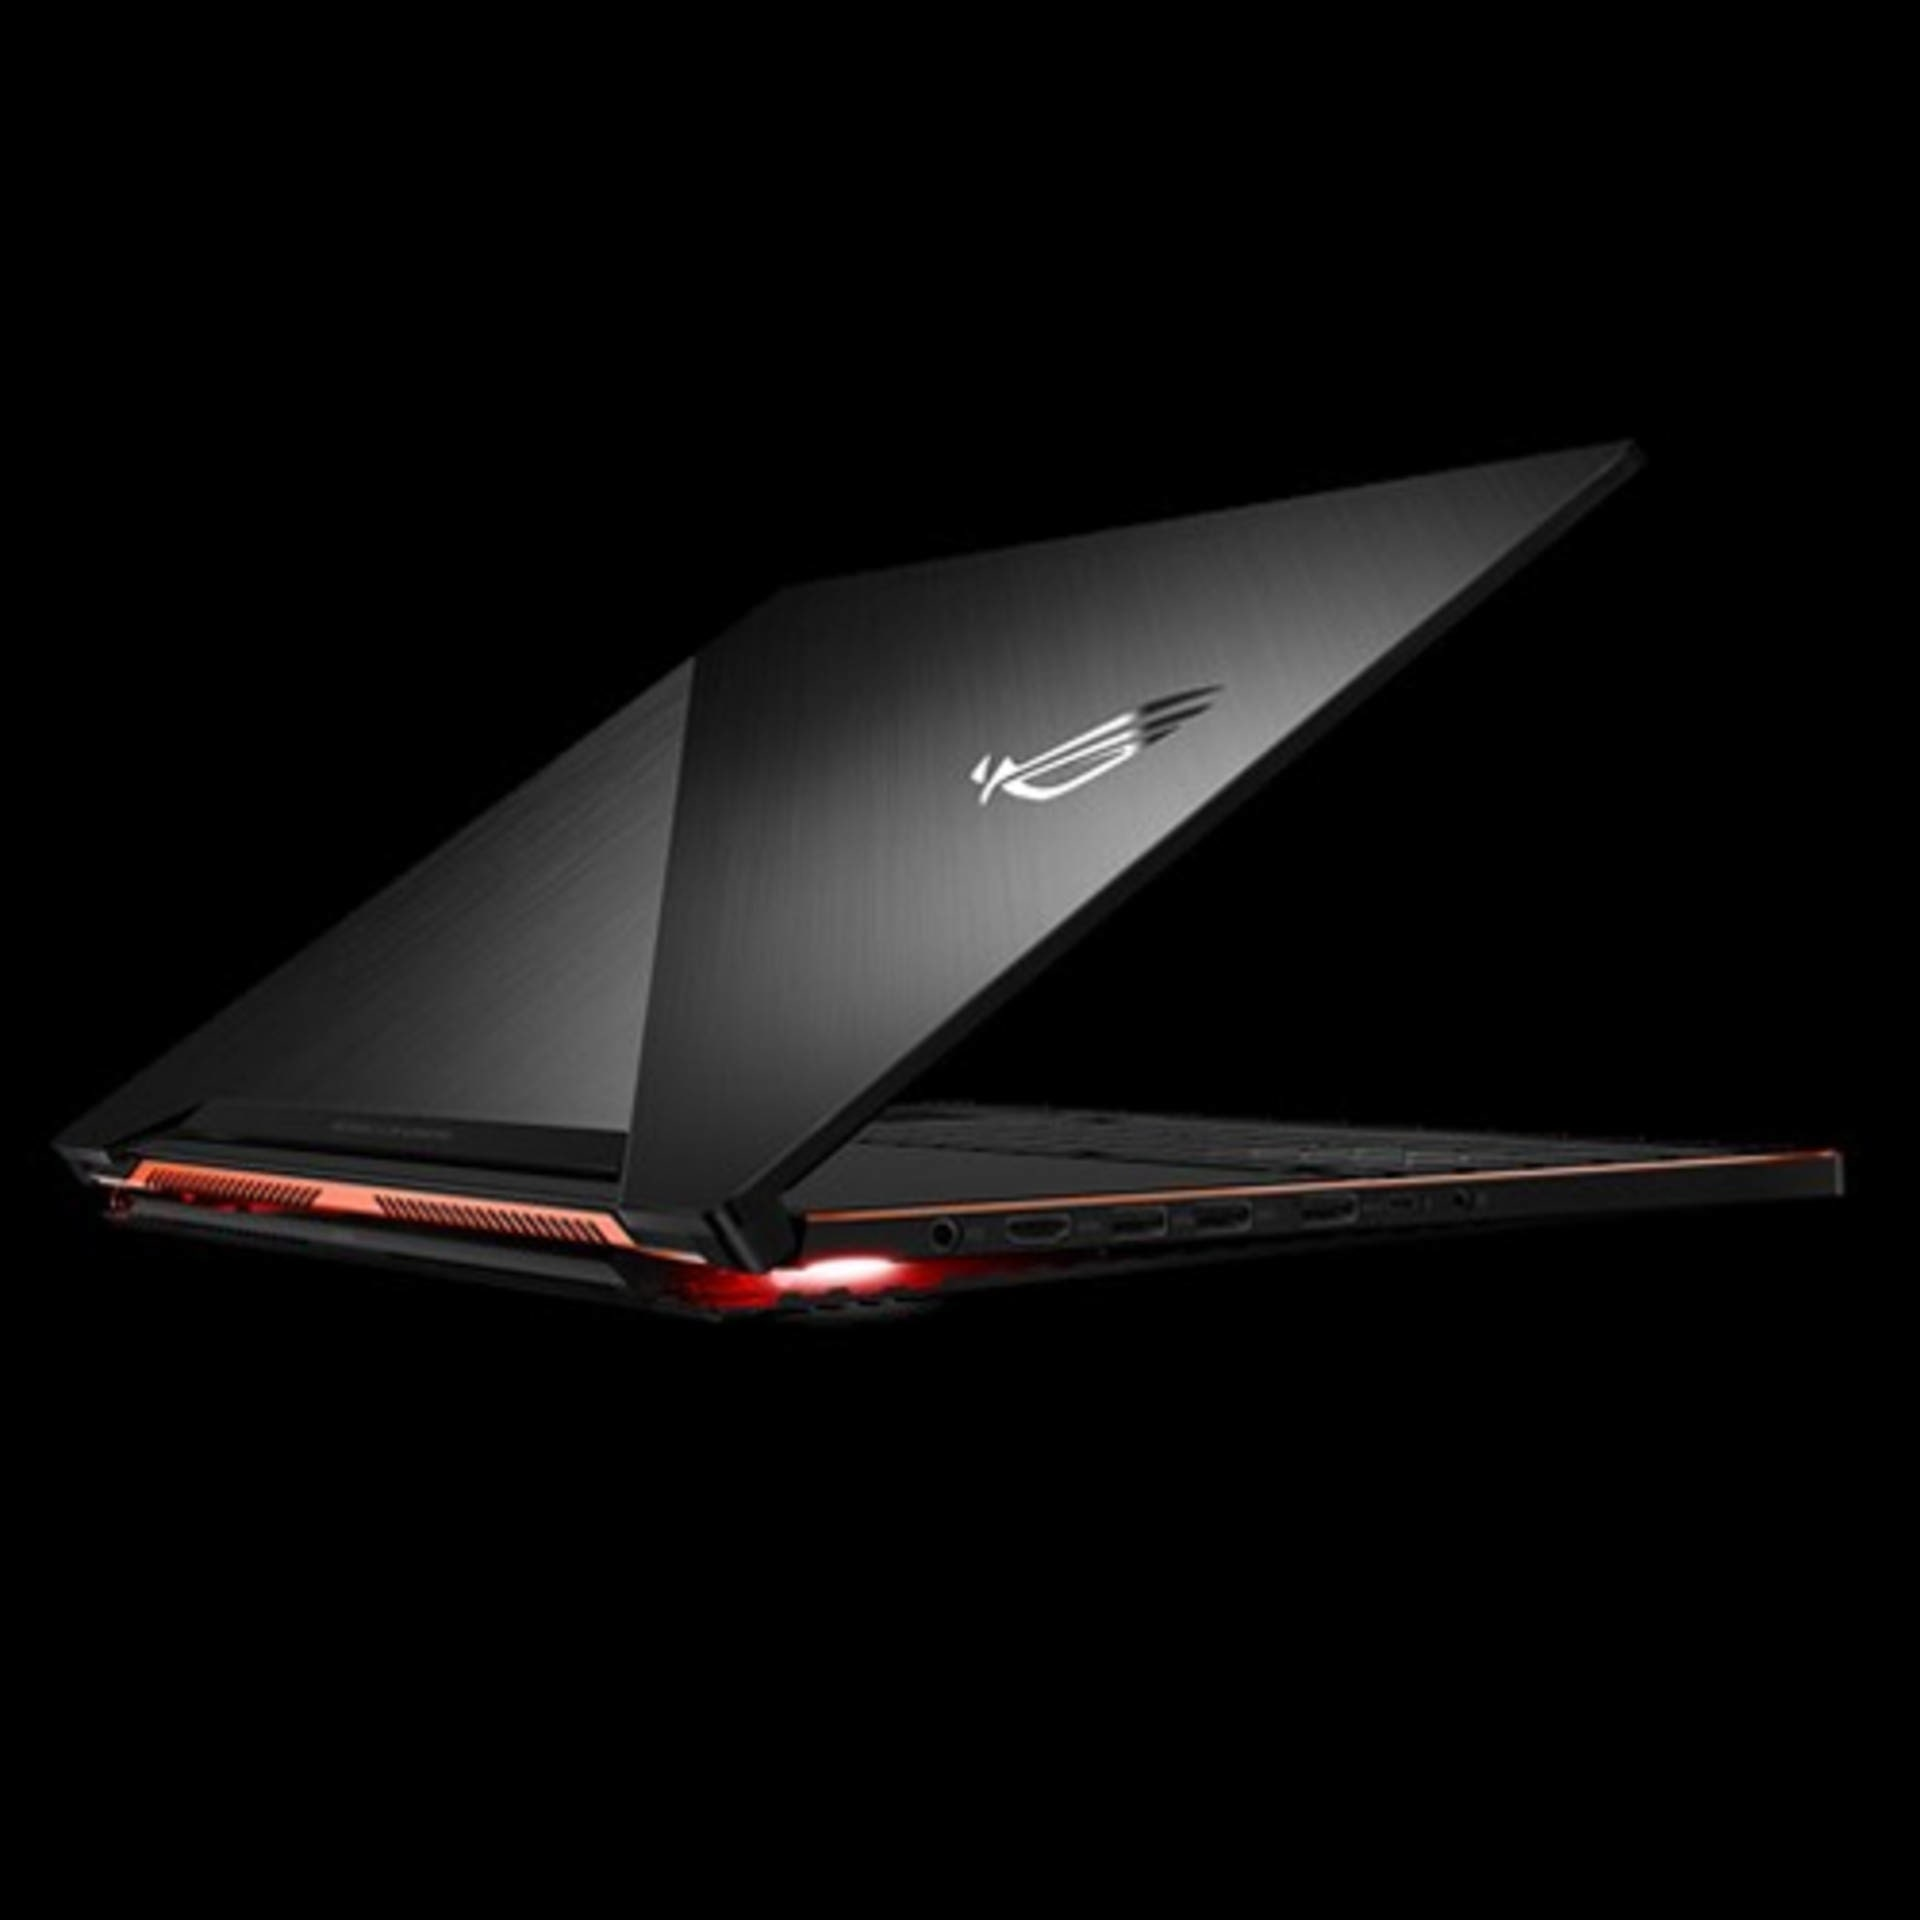 Asus ROG Zephyrus GX501VI-GZ029R Gaming Laptop